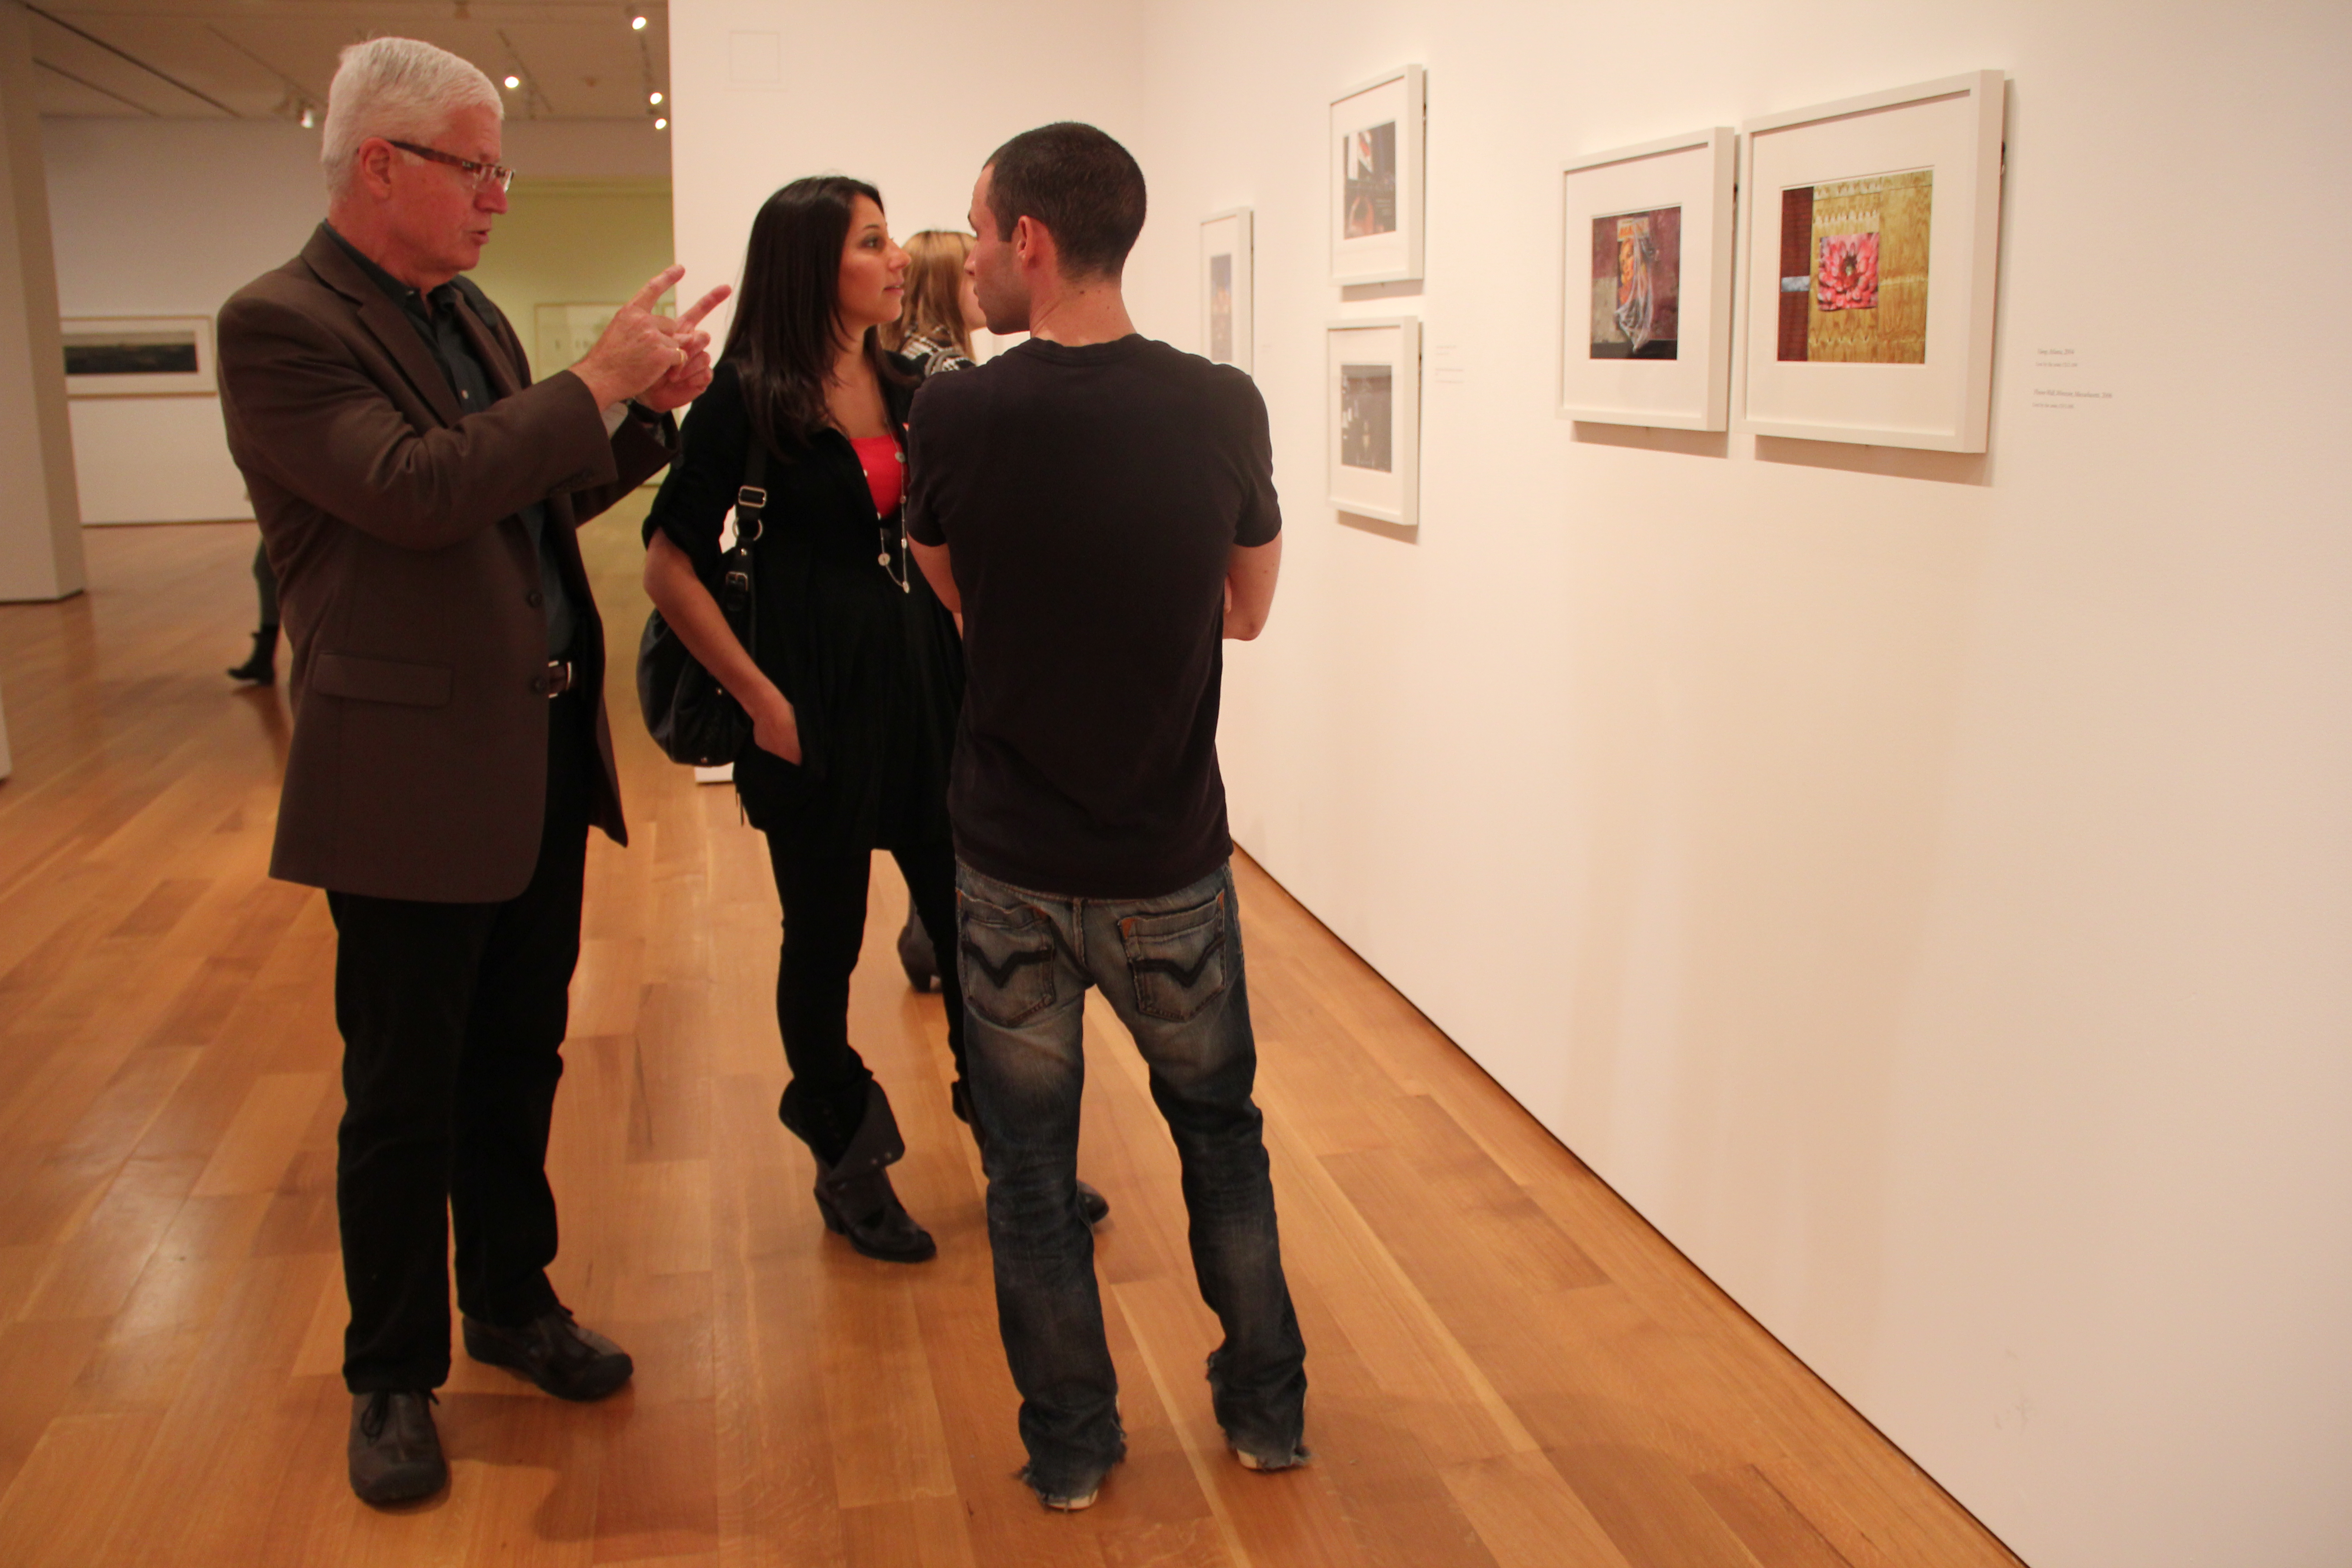 PHIELDING PHOTOGRAPHY QUESTIONS PHROM PHANS: Chip Simone answers questions from visitors at his exhibit, The Resonant Image, on the bottom floor of the High Museum.  Simone was often present at the High and frequently discussed his work  with the people who visited his show.